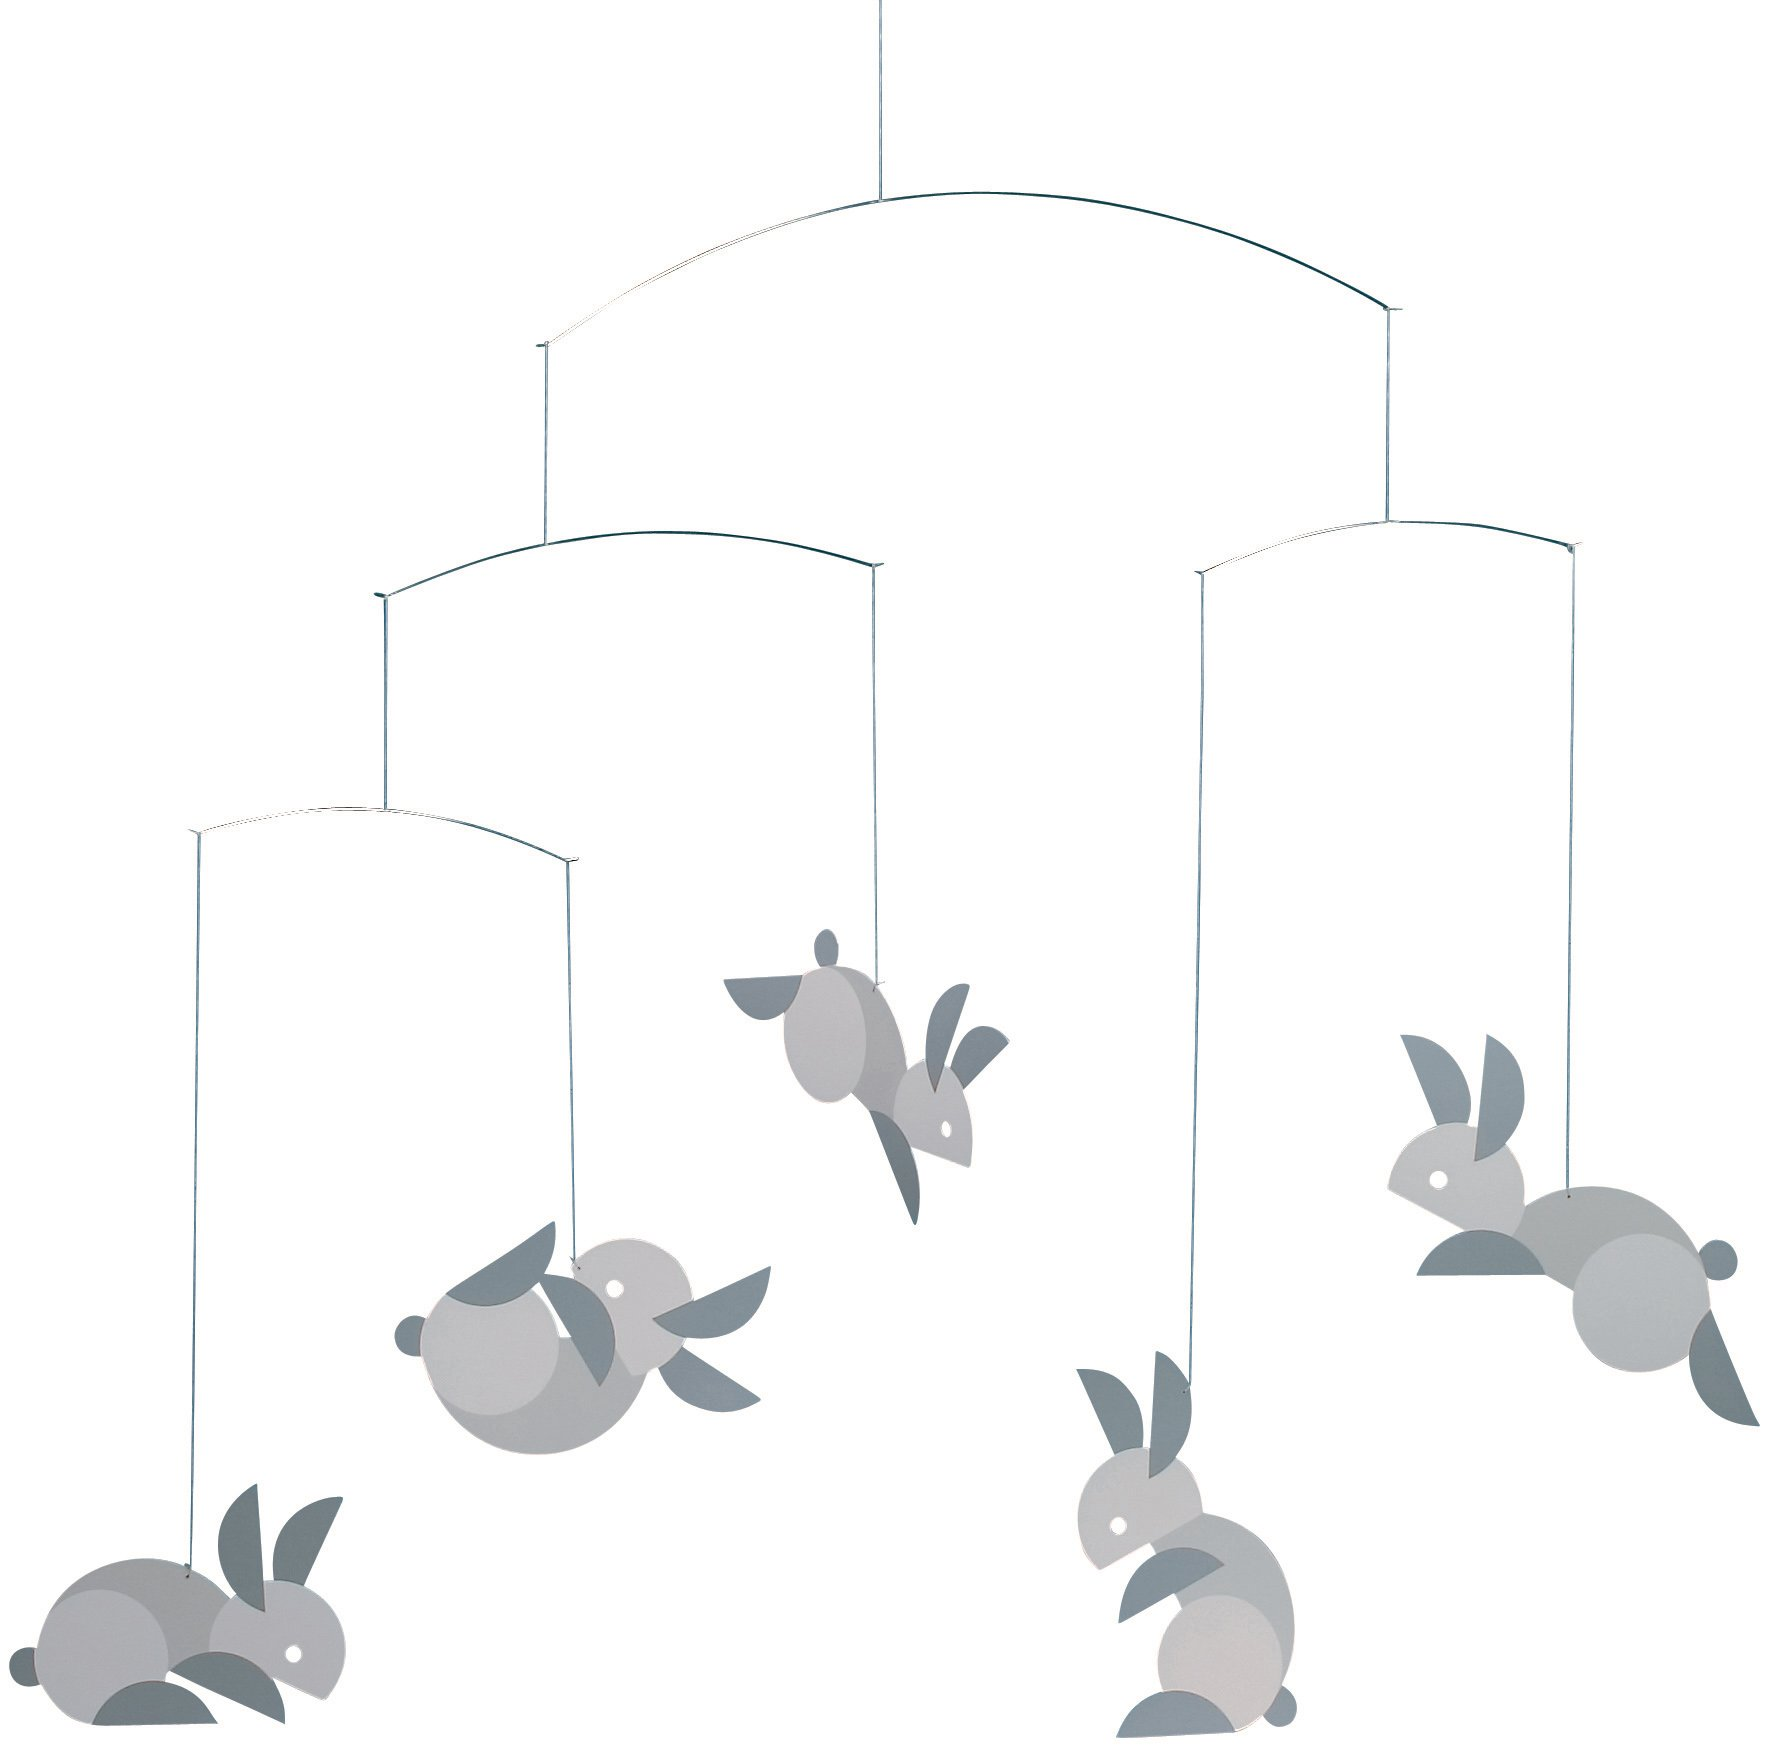 Flensted Mobiles Circular Bunnies Hanging Nursery Mobile - 21 Inches Cardboard